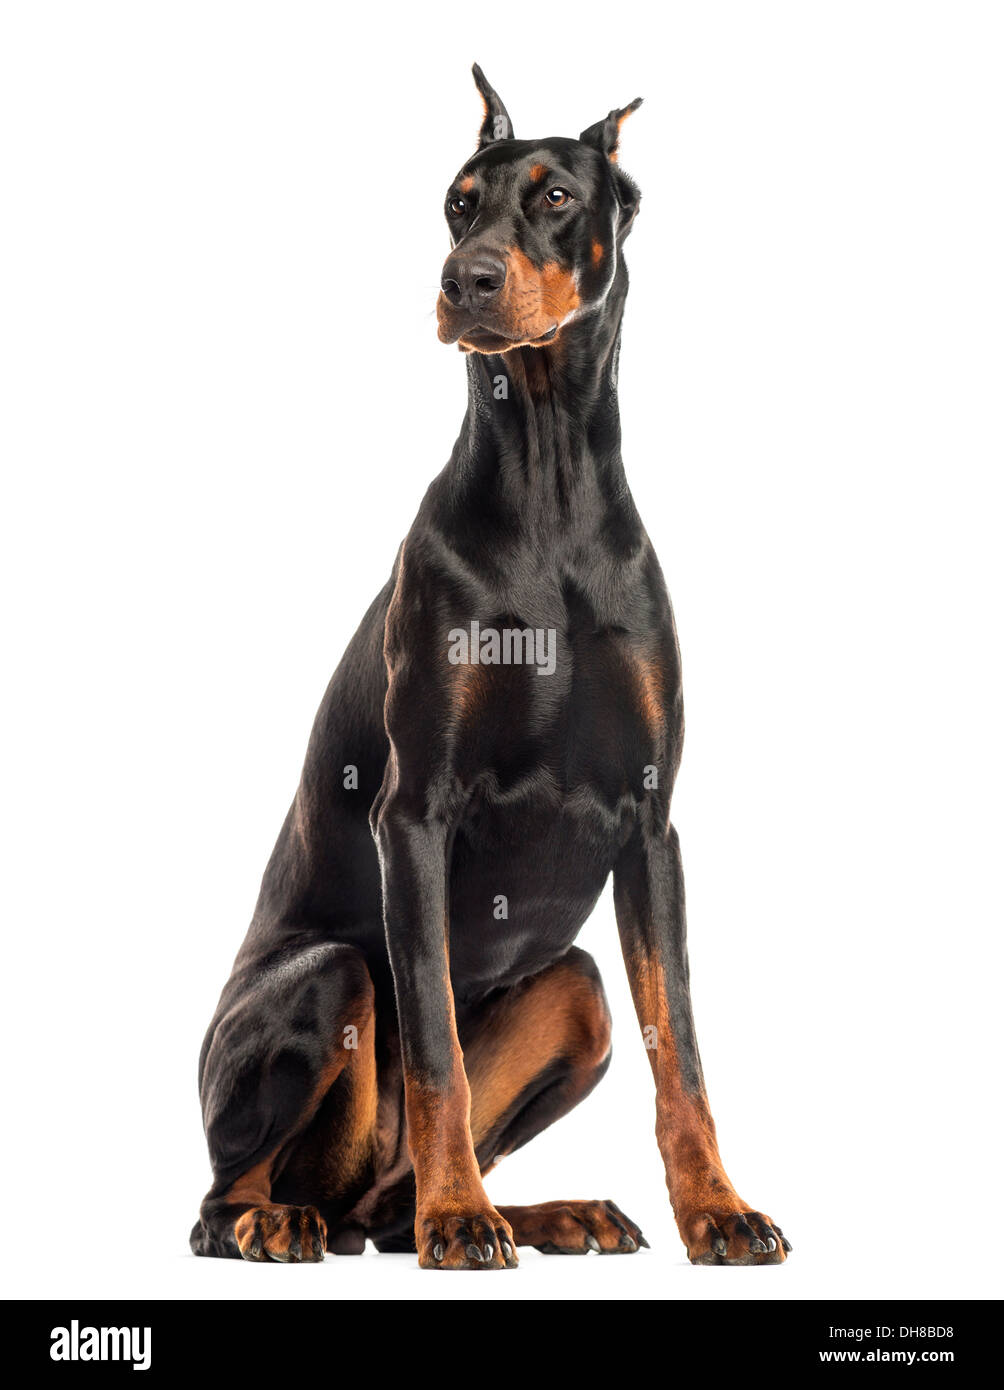 Doberman Pinscher sitting, looking away against white background - Stock Image